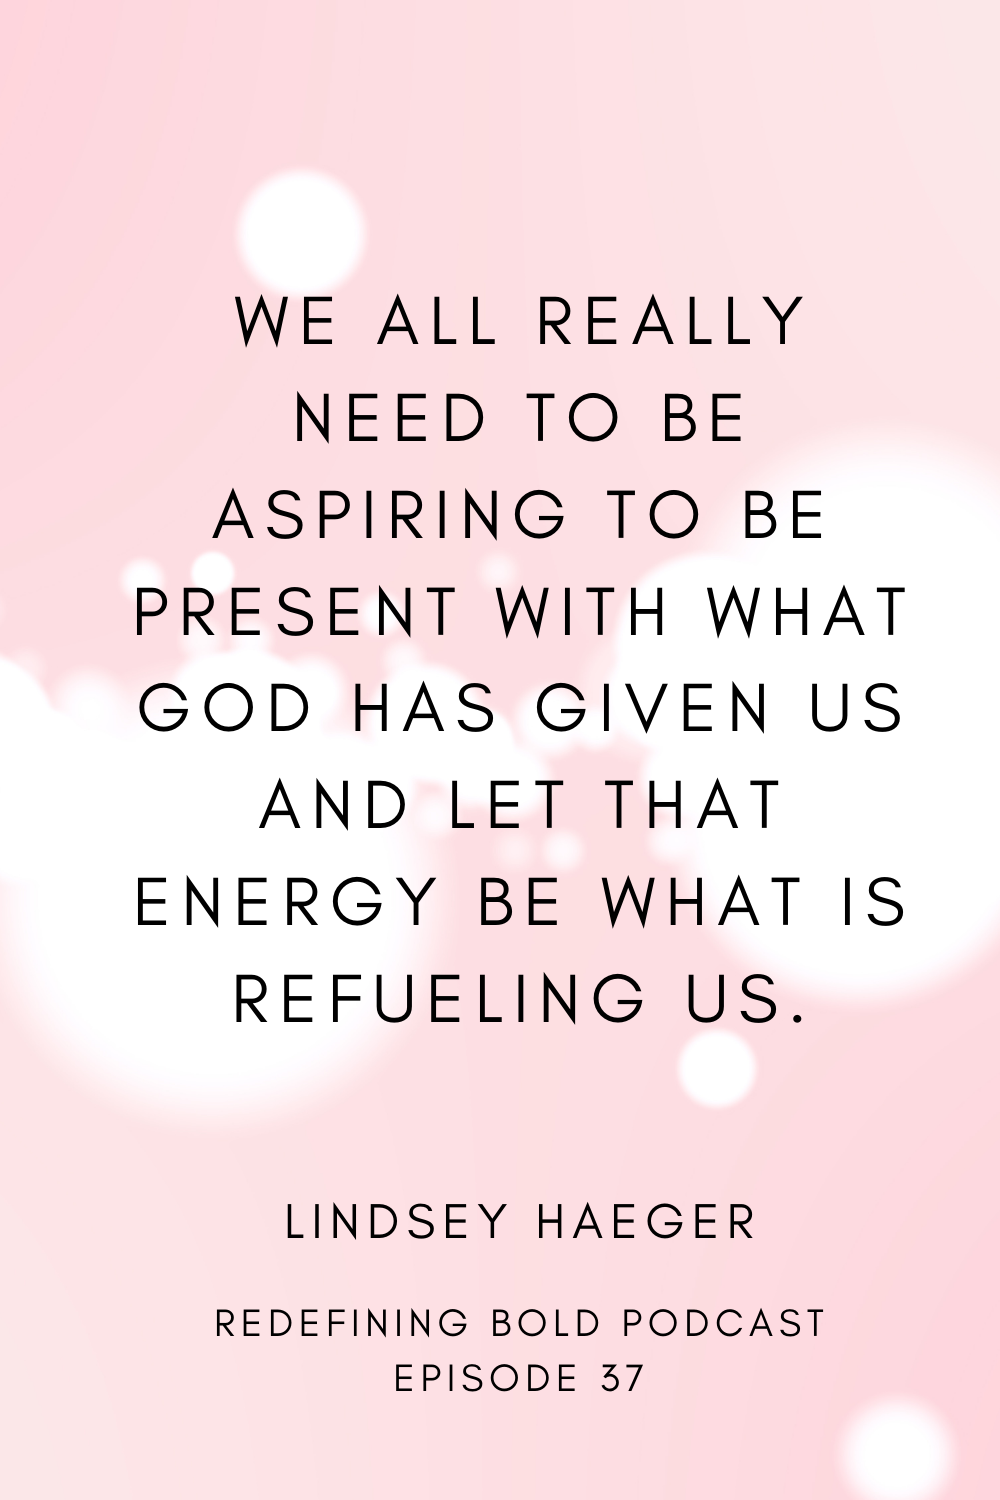 Redefining Bold Podcast Episode #37 with guest, Lindsey Haeger from the Peacemaker's Podcast.  Come listen as we talk about the power of surrender to the present moment!